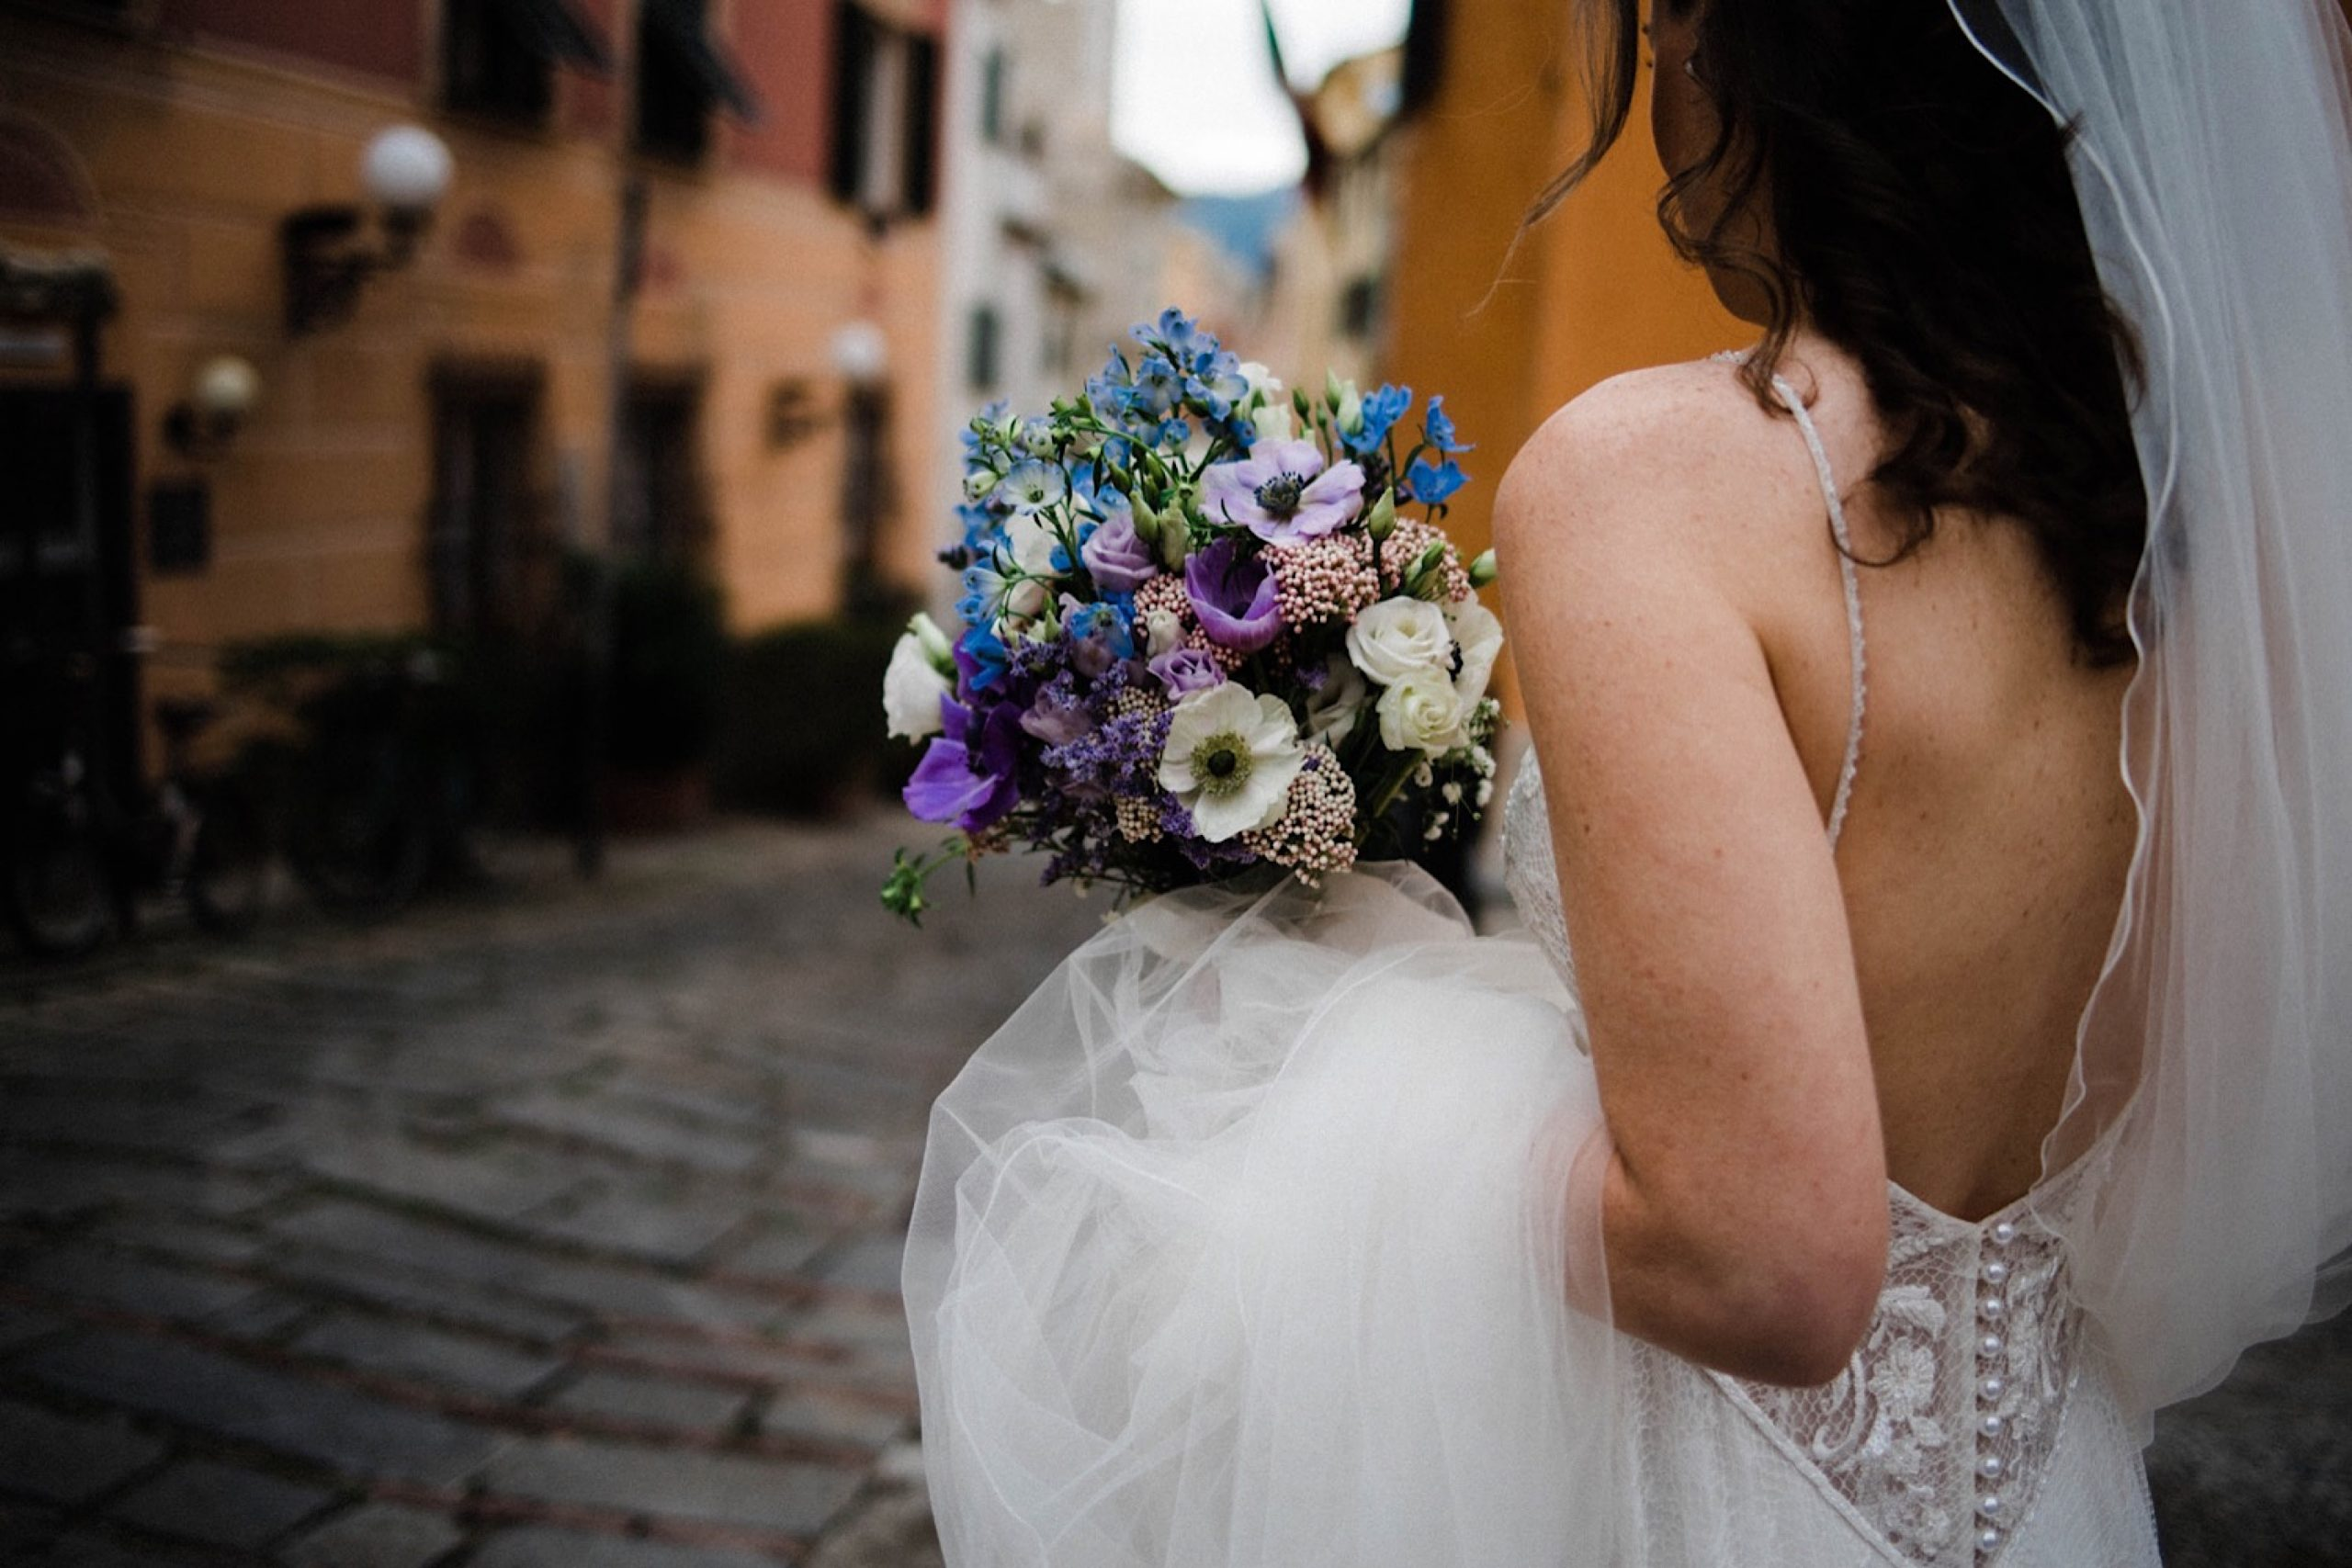 Candid Destination Wedding Photography of a bride walking through the Sestri Levante's streets towards her Wedding Ceremony.